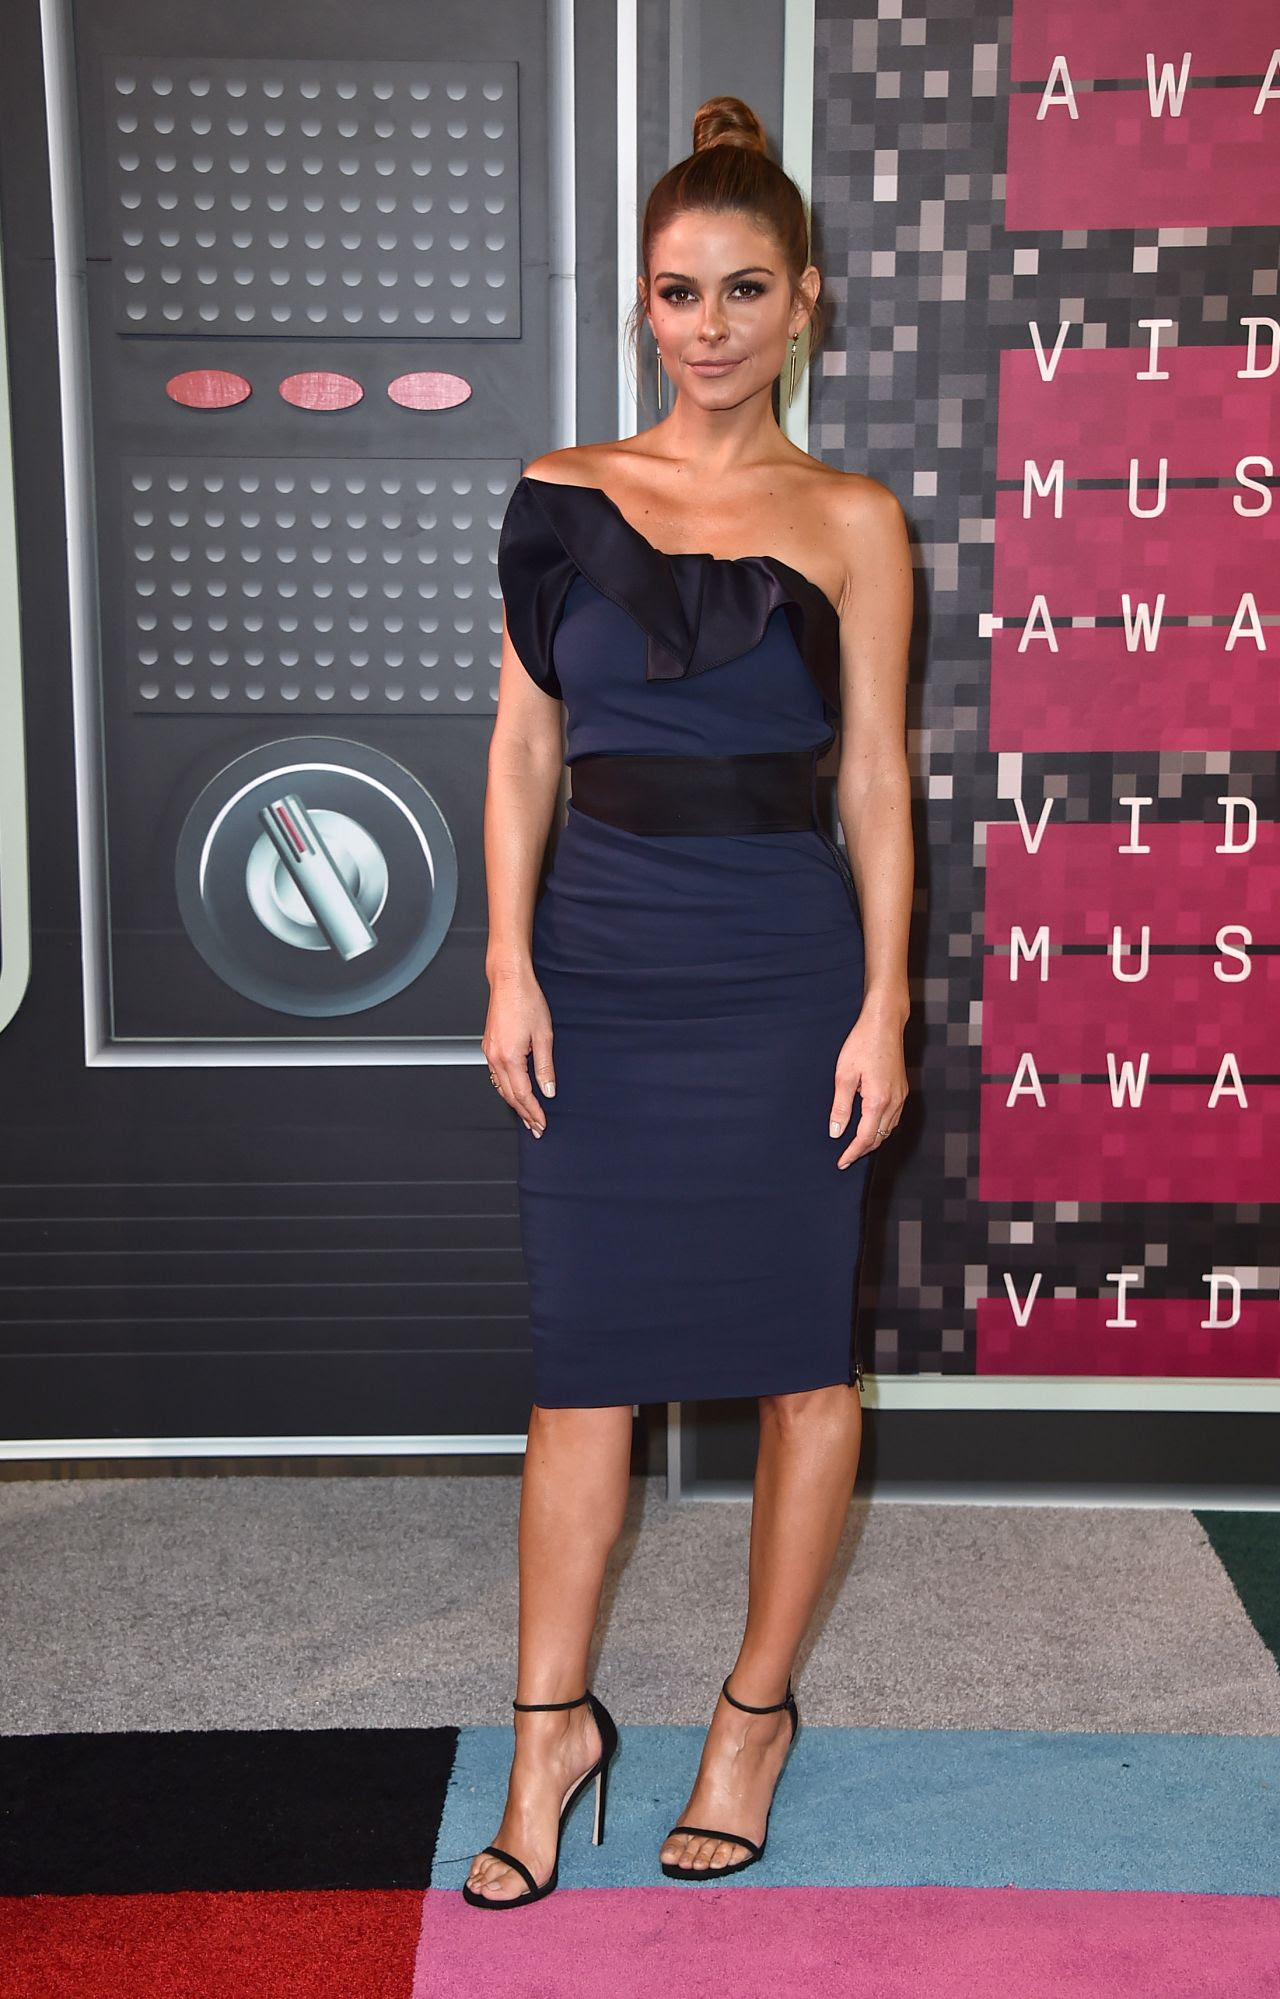 http://celebmafia.com/wp-content/uploads/2015/08/maria-menounos-2015-mtv-video-music-awards-at-microsoft-theater-in-los-angeles_1.jpg